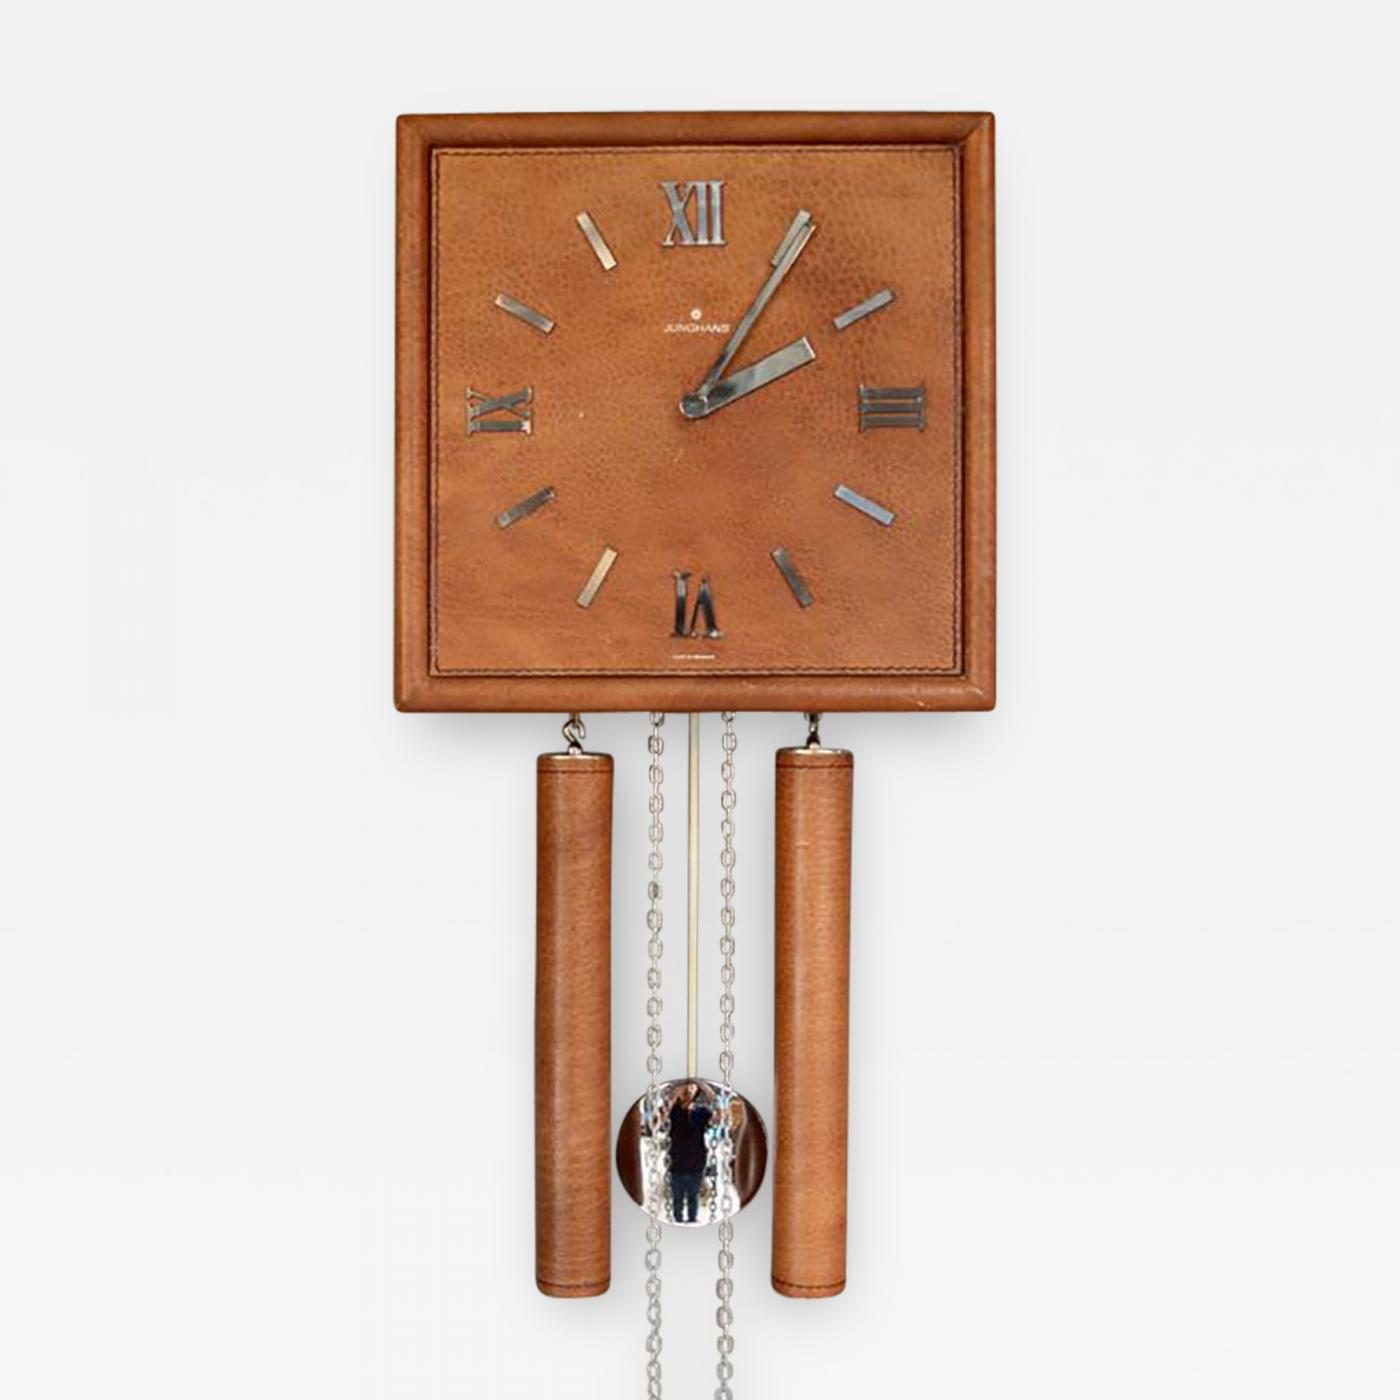 Junghans Uhren Junghans Uhren Gmbh German Leather Wall Clock